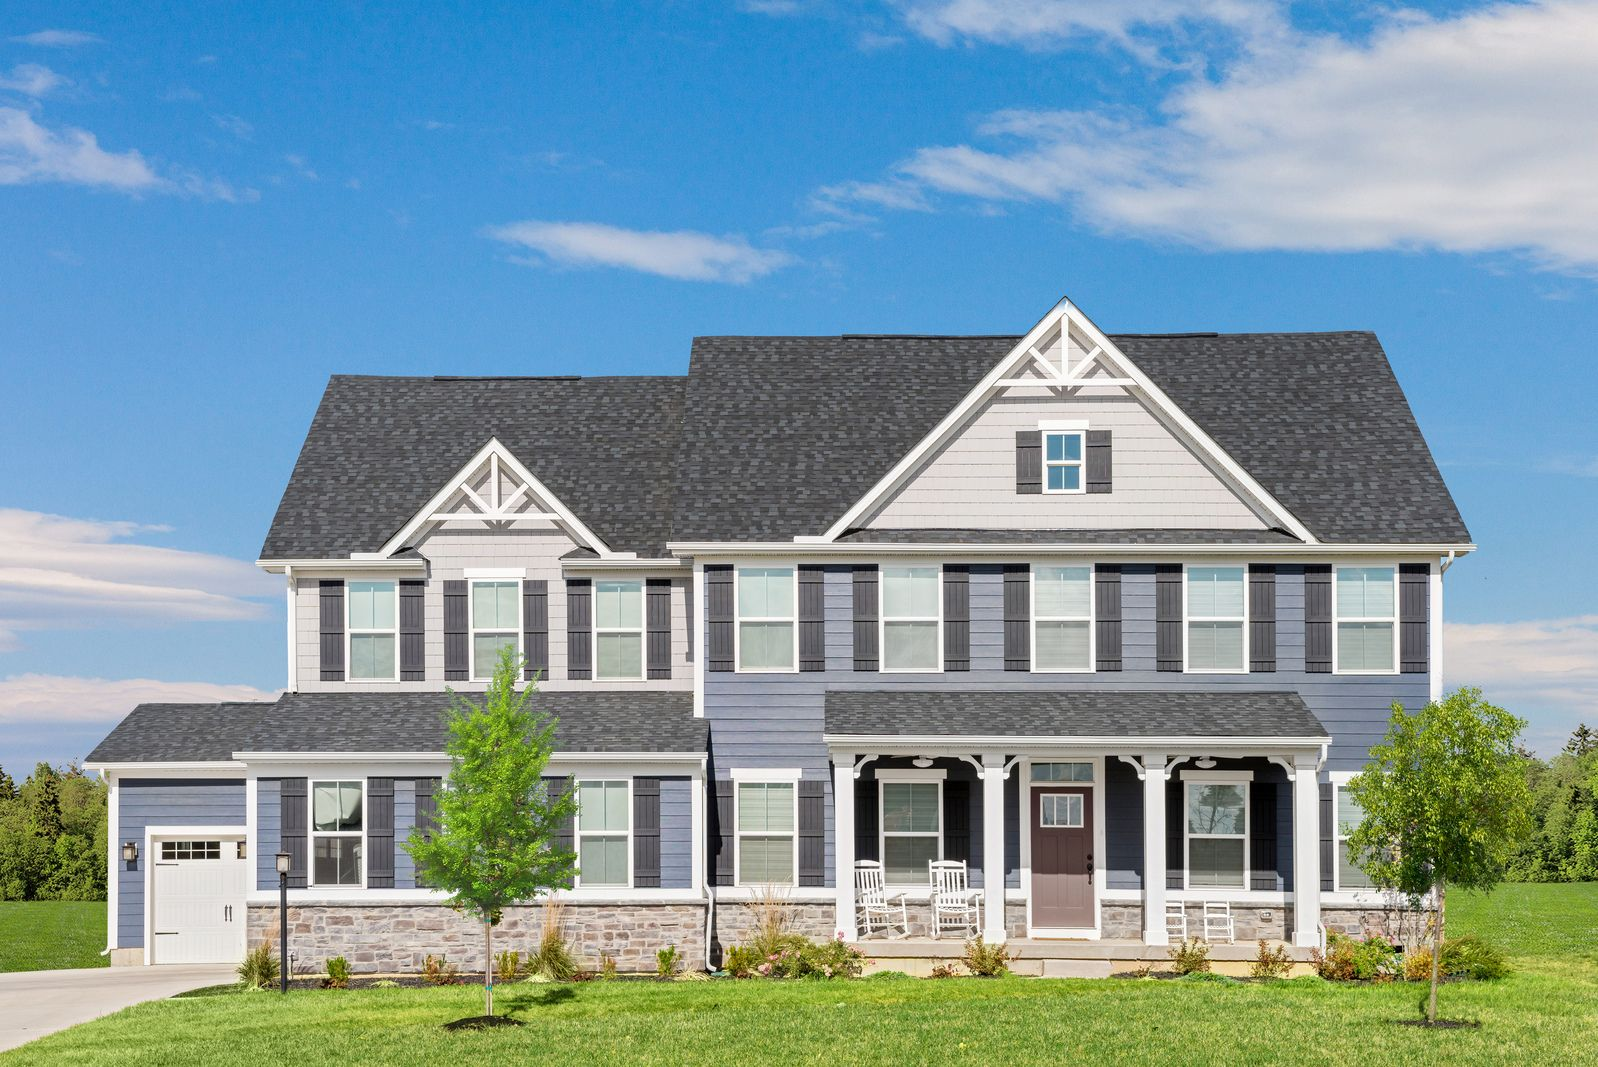 WELCOME TO BROAD RUN AT BROOKSIDE - COMING SOON TO THE GAINESVILLE AREA FROM THE $700S:Estate homes on 1/2+ acres in an established, lakeside, amenity-filled community situated between Gainesville & Old Town Warrenton!Join the VIP List for the first opportunity to purchase.